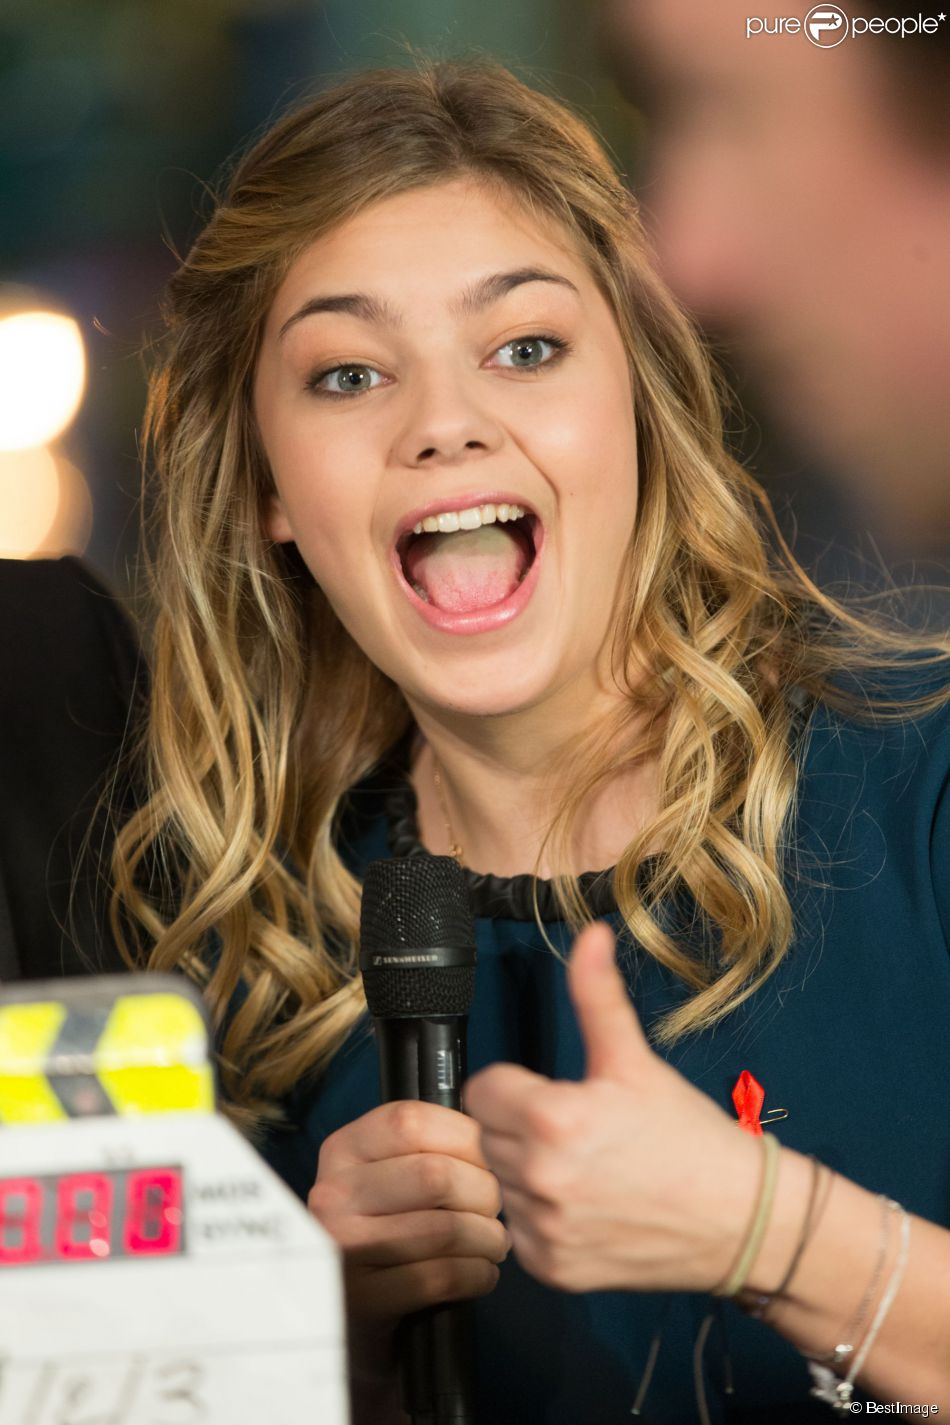 Exclusif - Louane Emera - Backstage de l'enregistrement de l'émission  La télé chante pour le Sidaction  aux Folies Bergère à Paris. Le 11 mars 2015.